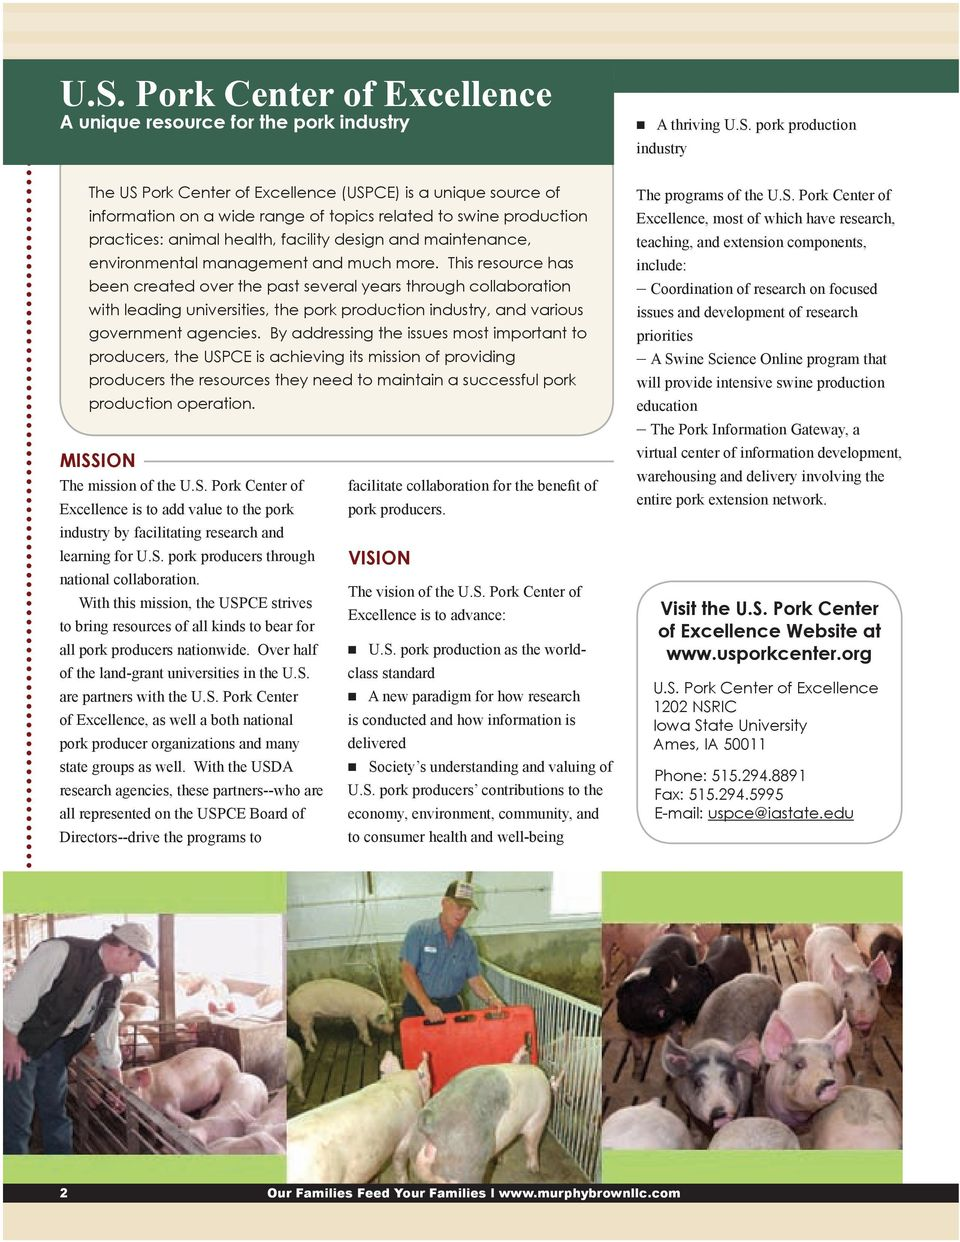 This resource has been created over the past several years through collaboration with leading universities, the pork production industry, and various government agencies.